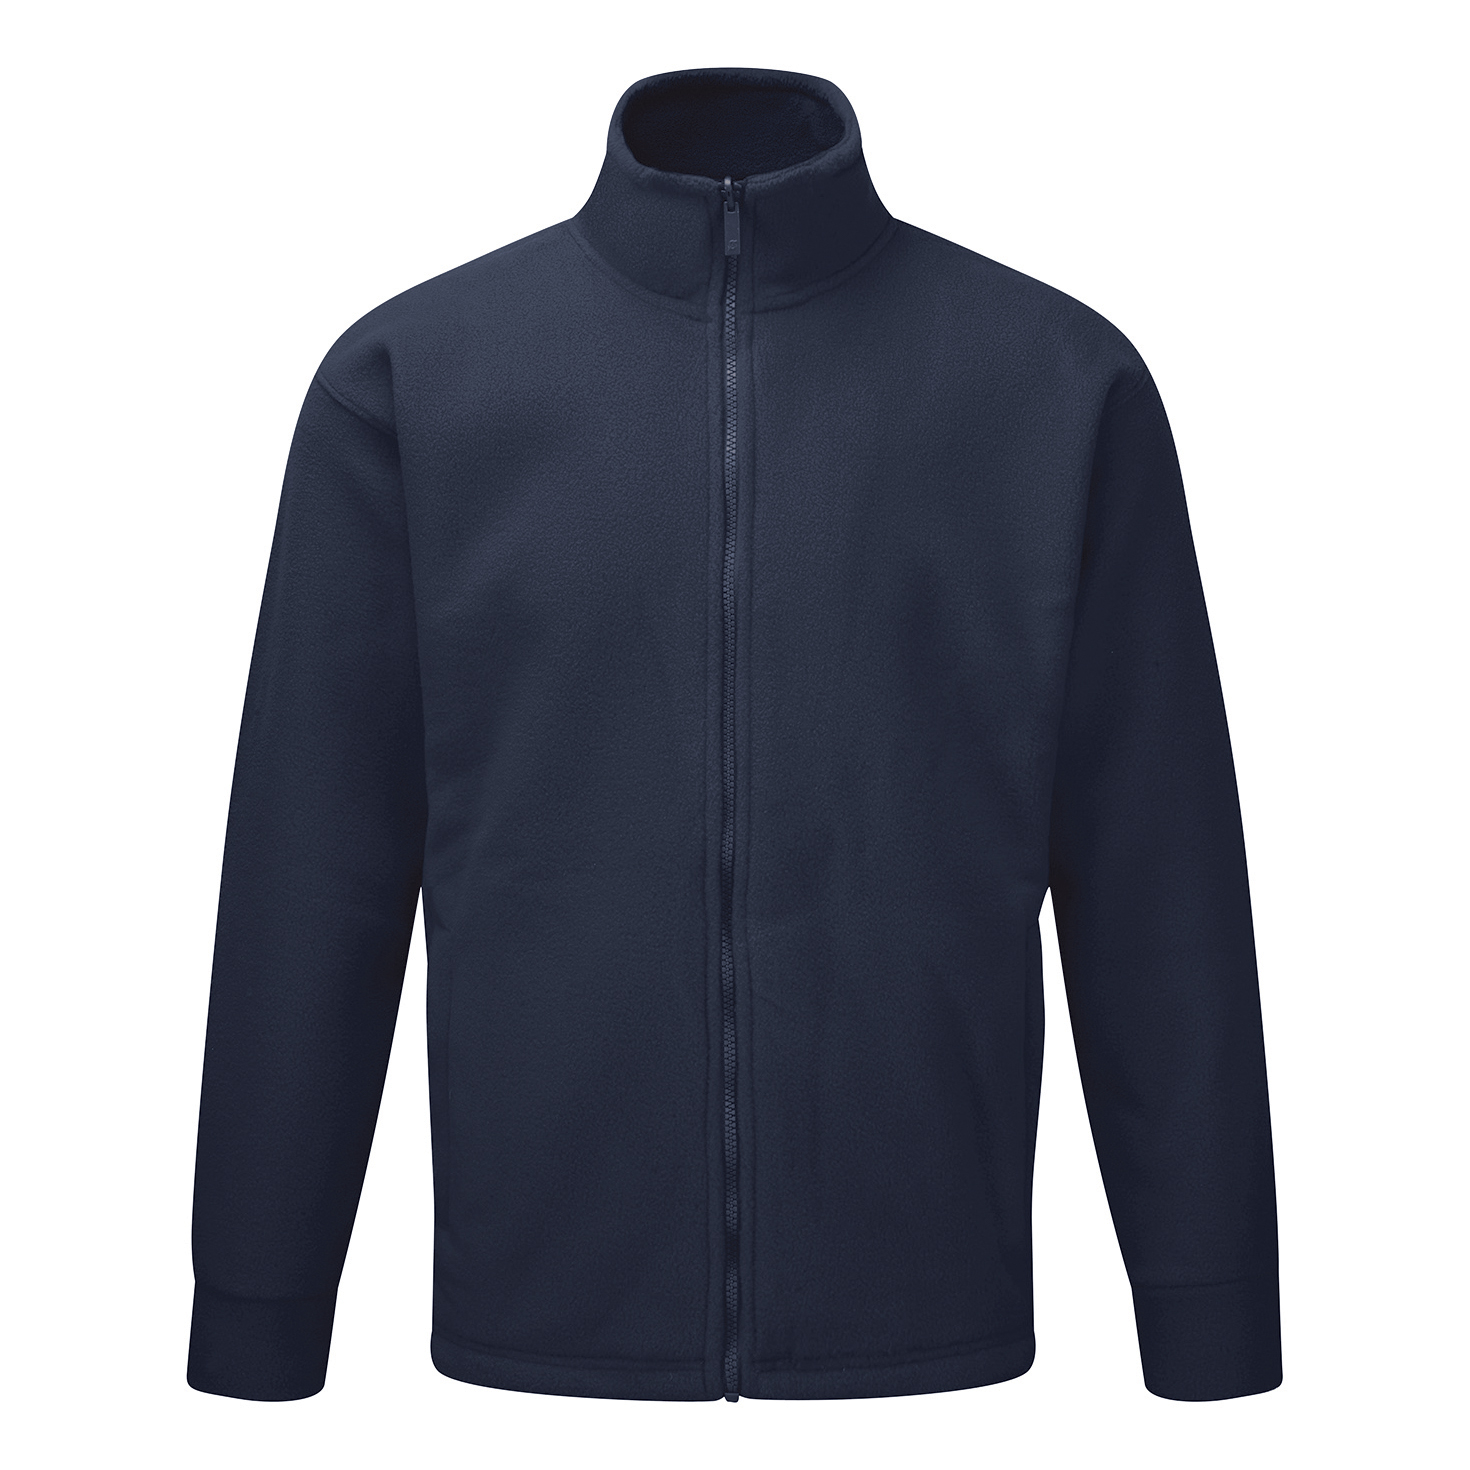 Fleeces Classic Fleece Jacket Elasticated Cuffs Full Zip Front 4XL Navy Blue Ref FLJN4XL *1-3 Days Lead Time*